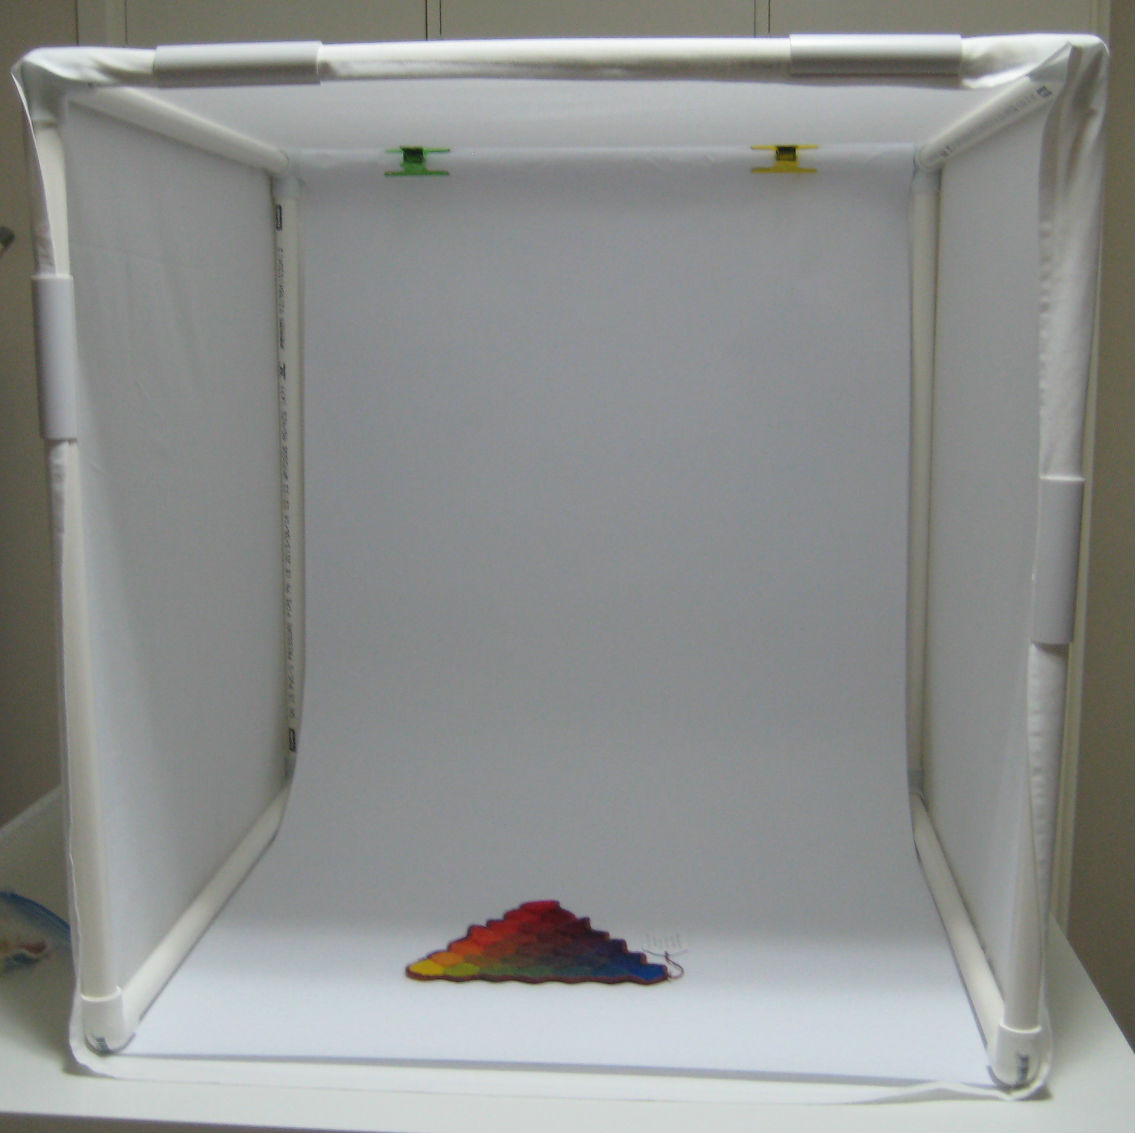 Photography Light Box made from PVC connectors and pipe